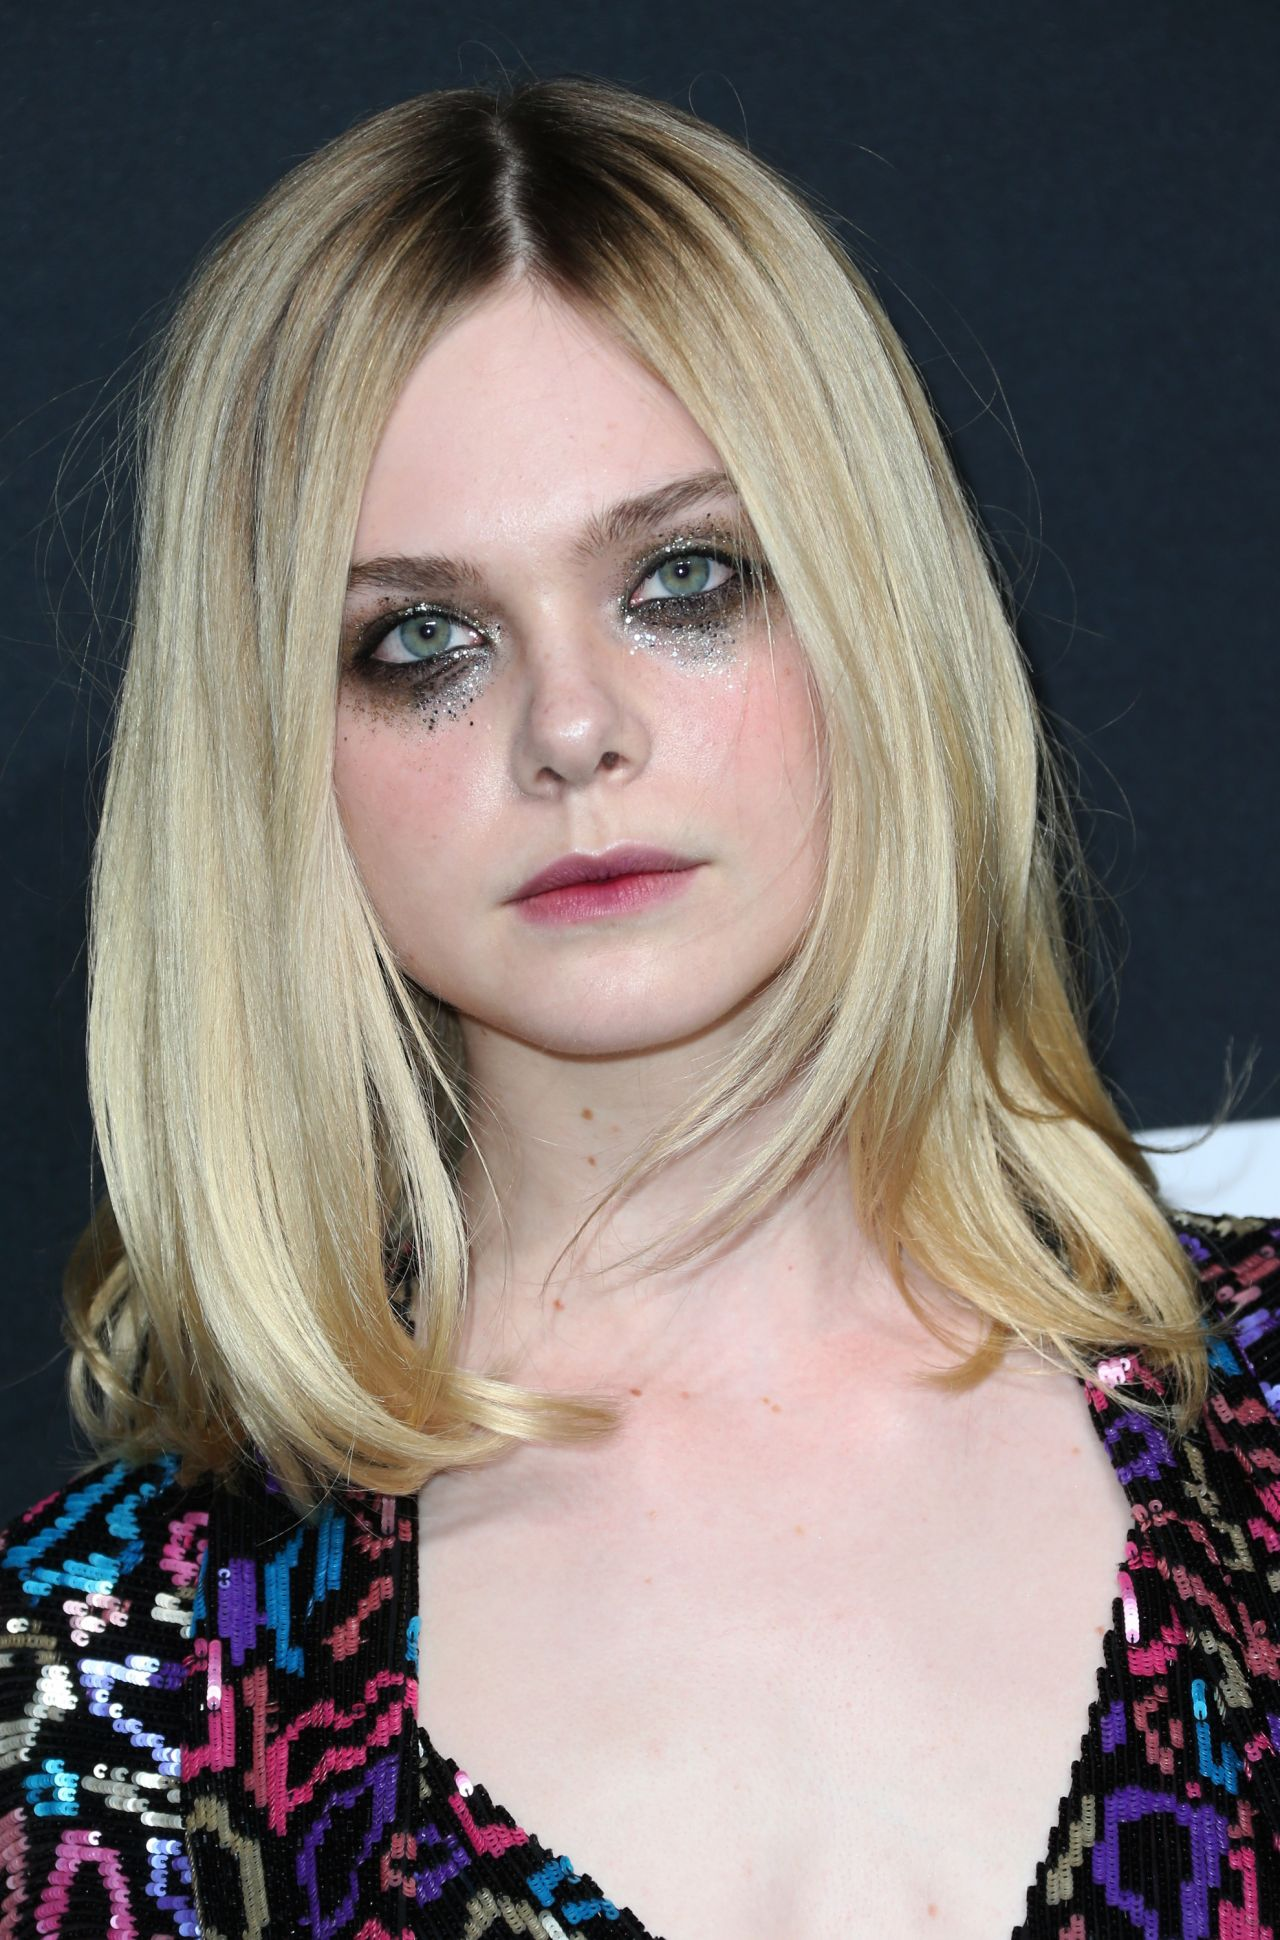 Elle Fanning Covers Fashion Magazine Says She Loves Being: Saint Laurent Show At The Palladium In Los